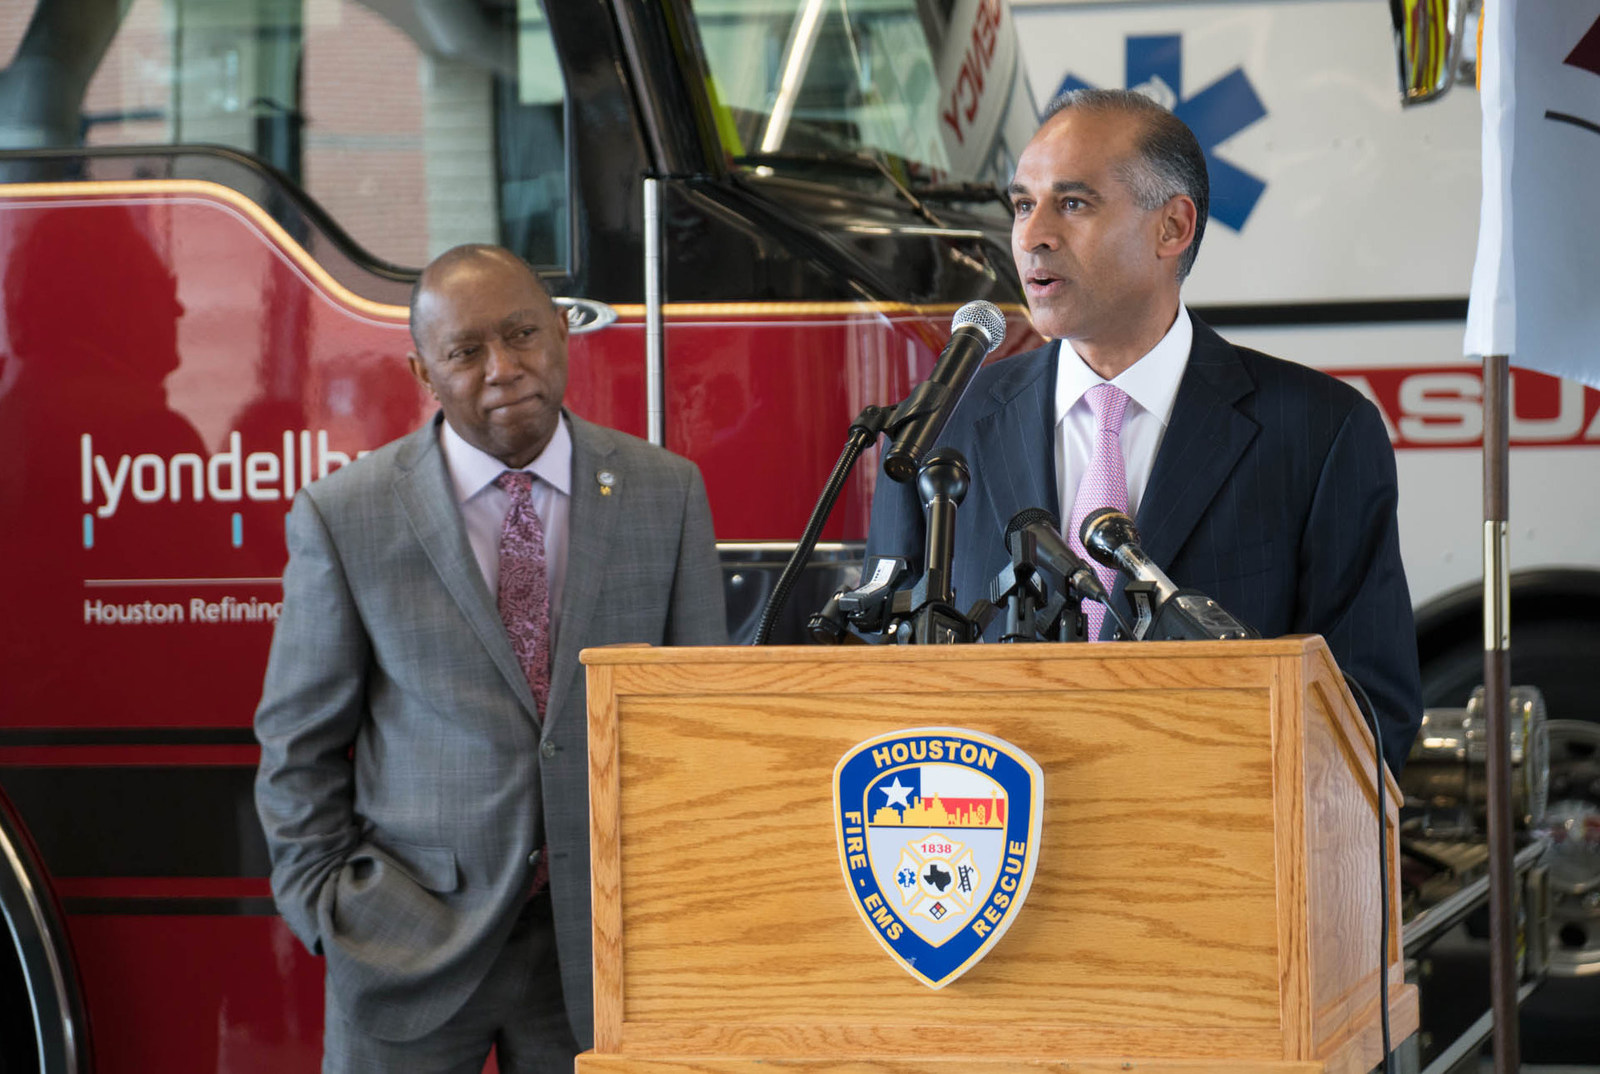 Houston Mayor Sylvester Turner joins LyondellBasell CEO Bob Patel as he announces the donation of $100,000 for Houston-area firefighters to attend specialized HazMat training.